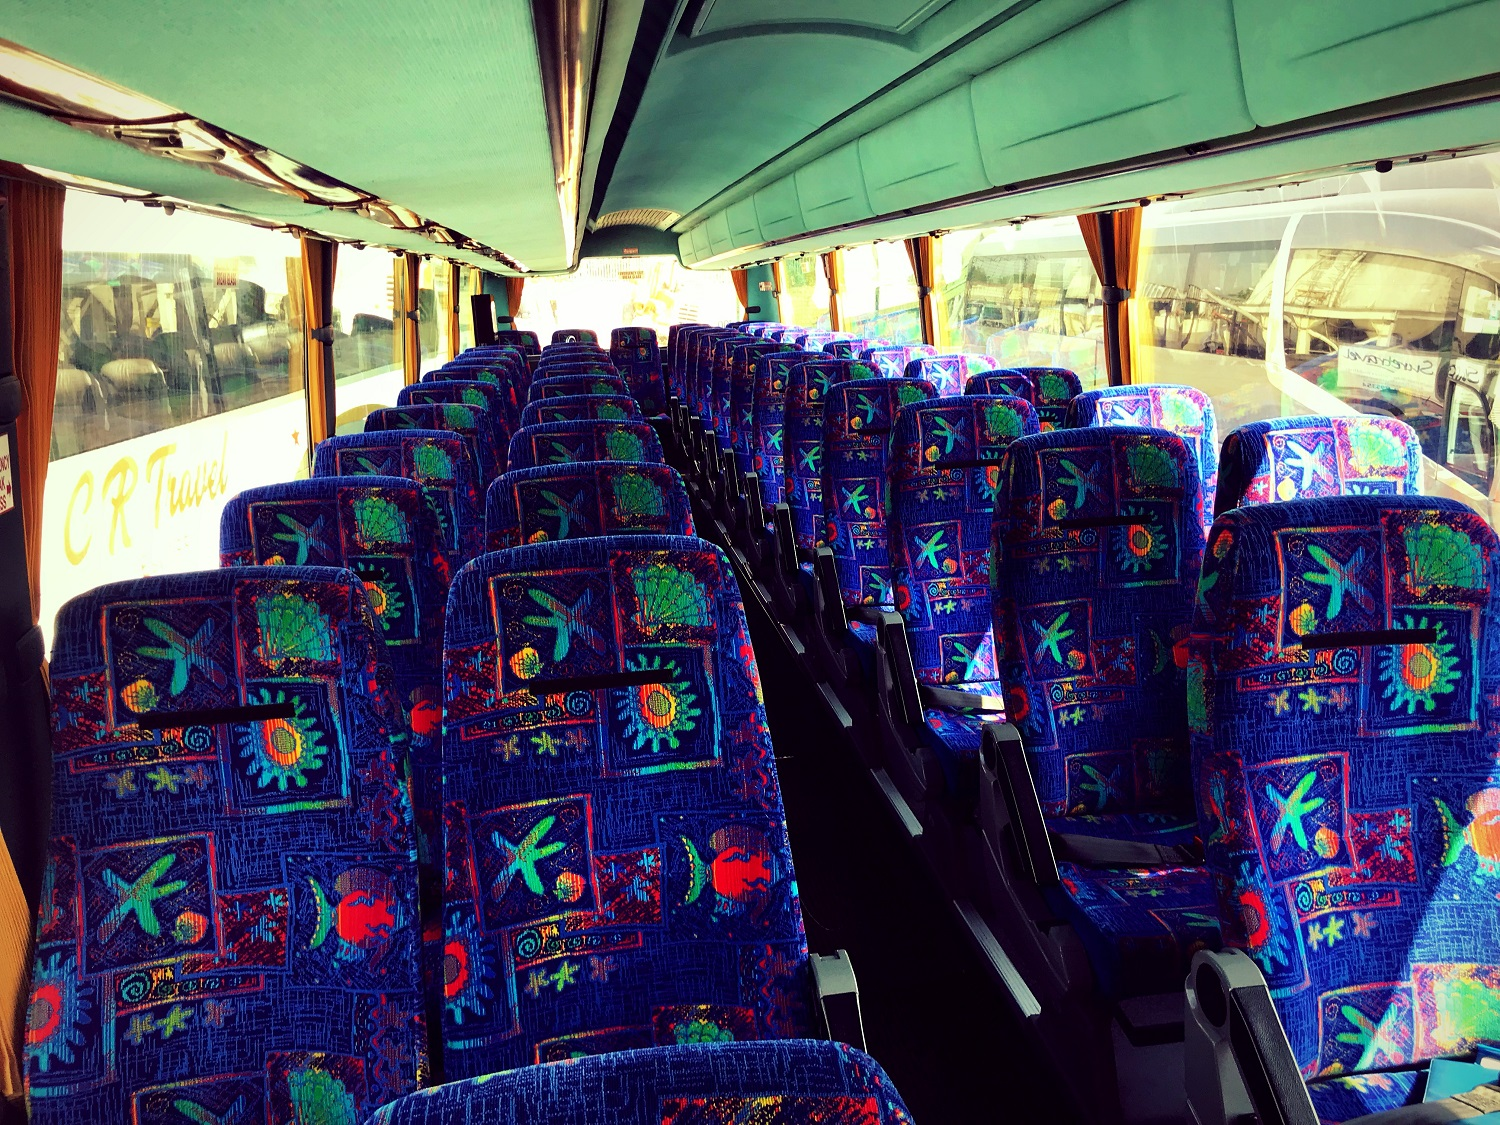 A view of the inside of Advanced Travel's 49 seater Scania Irizar coach, which is available for coach hire in Doncaster. The seats are placed in two rows of double seats, with an aisle down the middle. The back row has five seats next to each other.